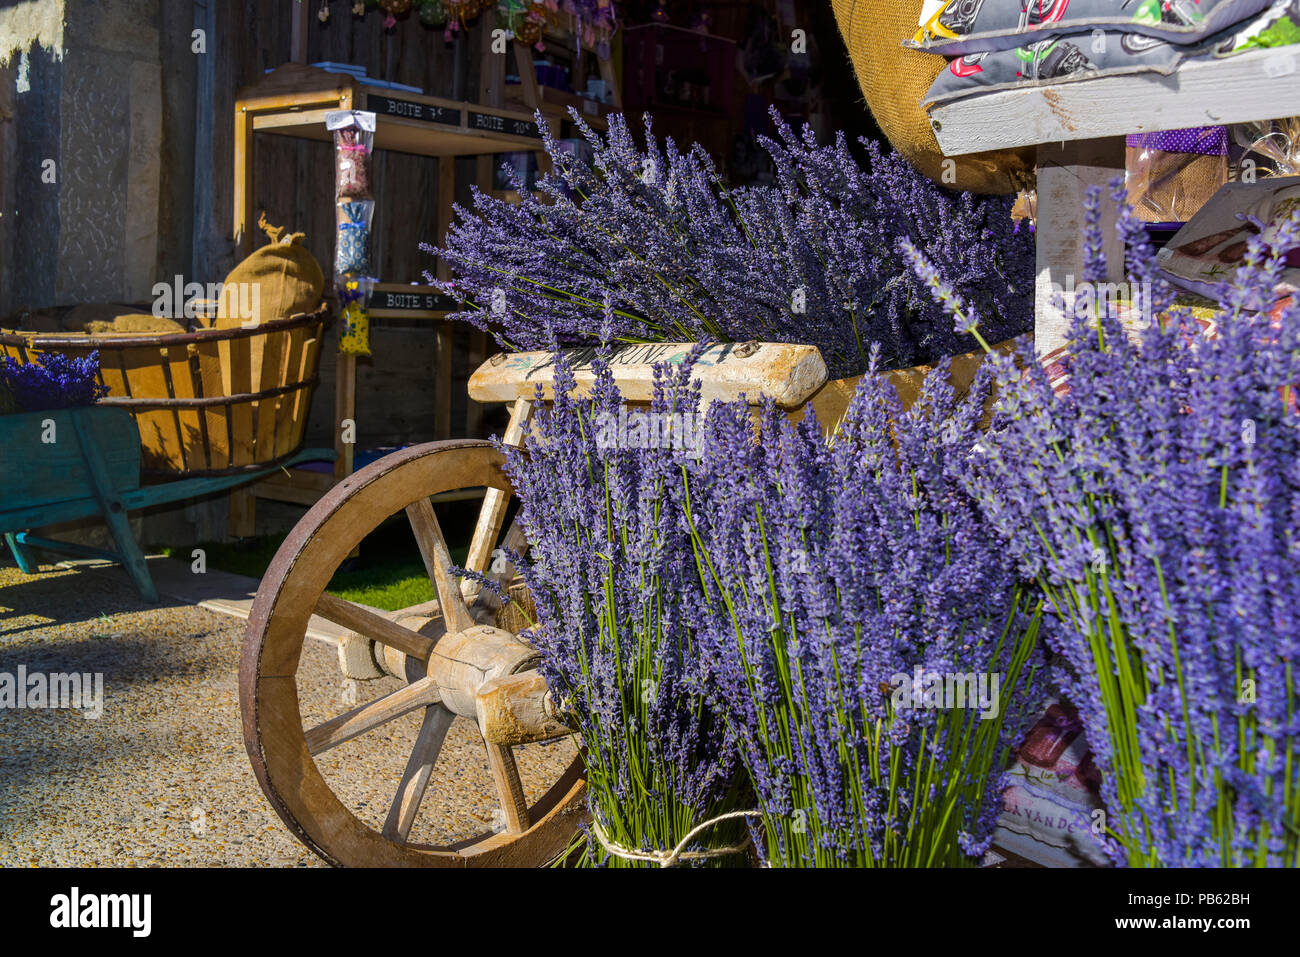 Provence Decoration Decoration With Typical Lavender Bushes Provence France